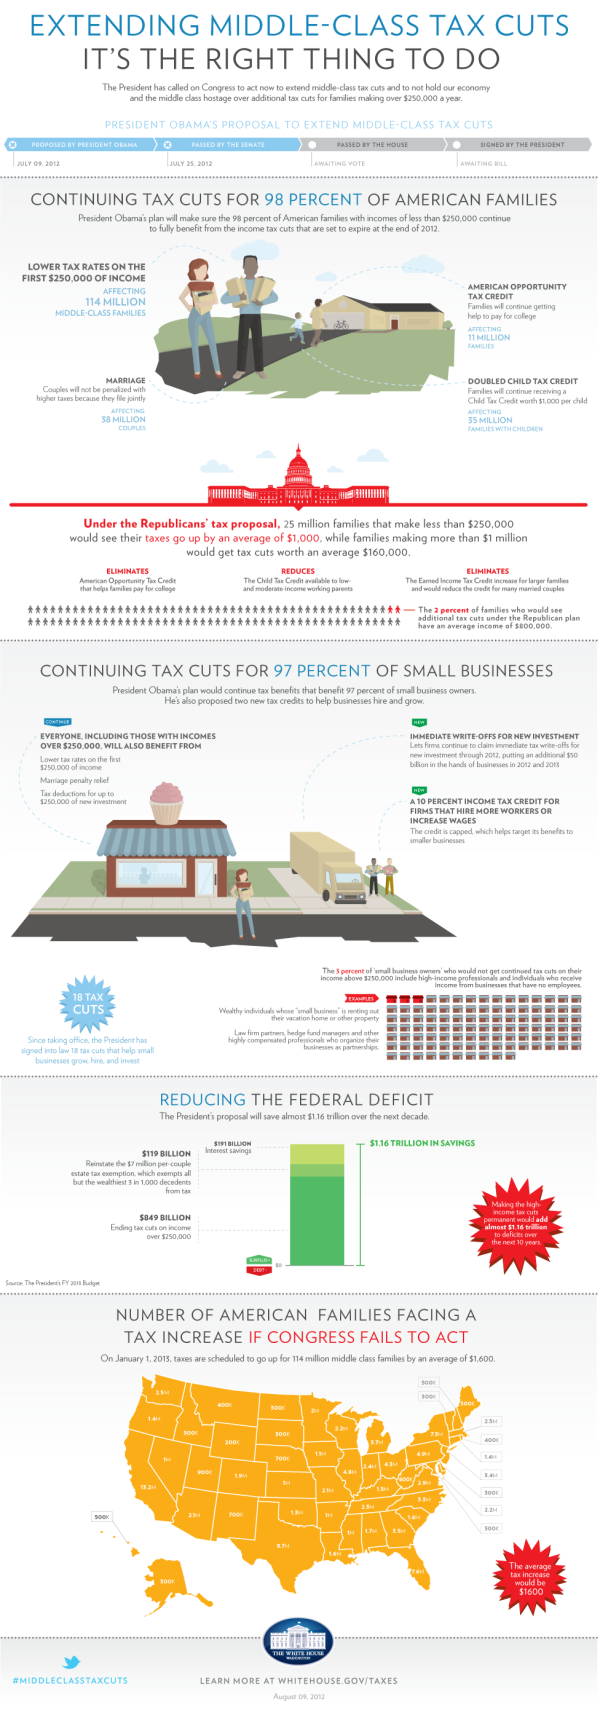 Extending Middle Class Tax Cuts Infographic